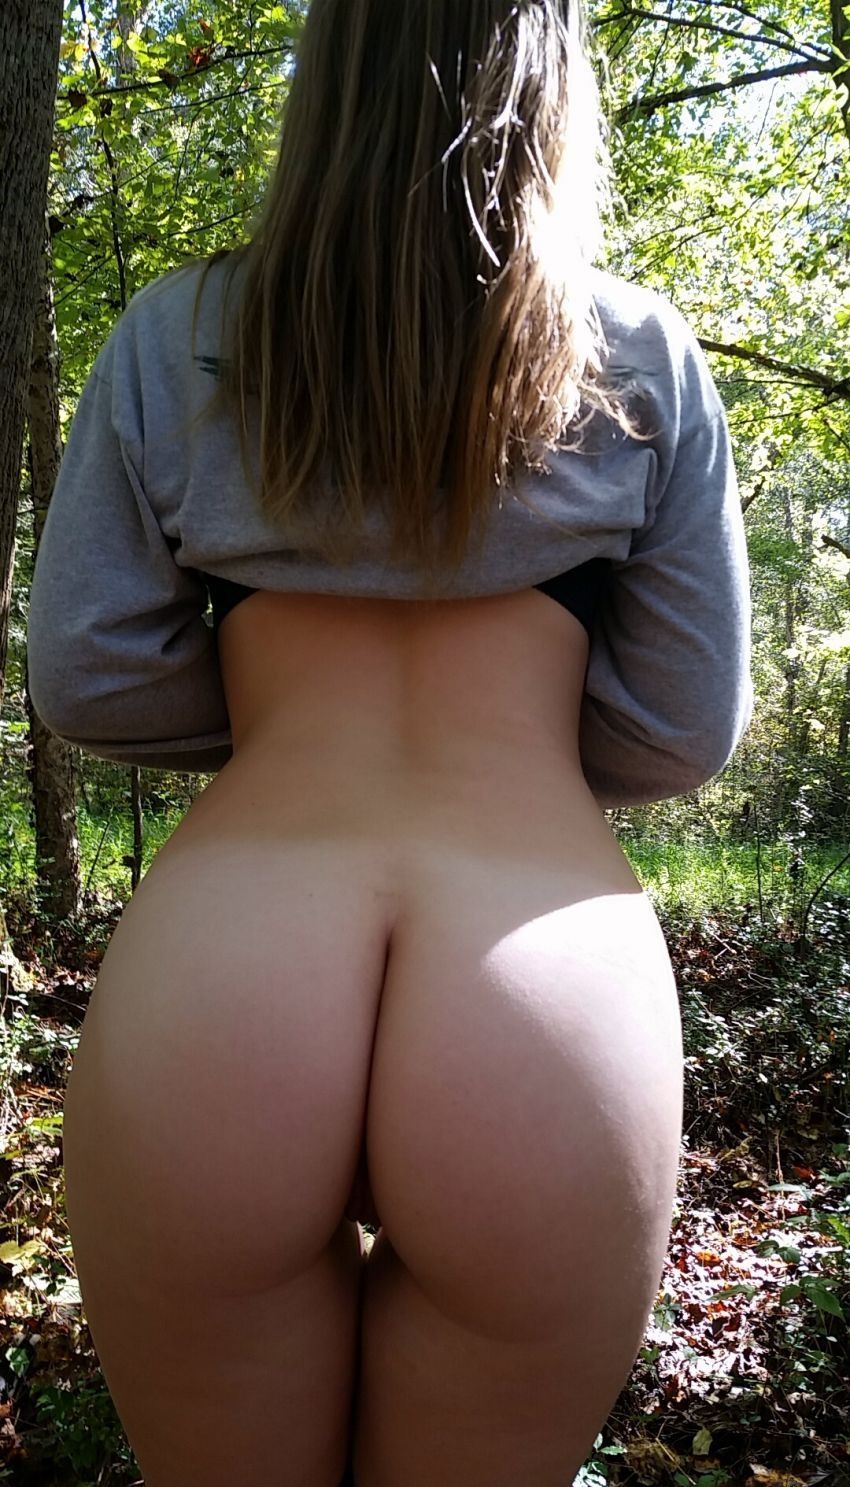 Youg moms naked ass pics — 10